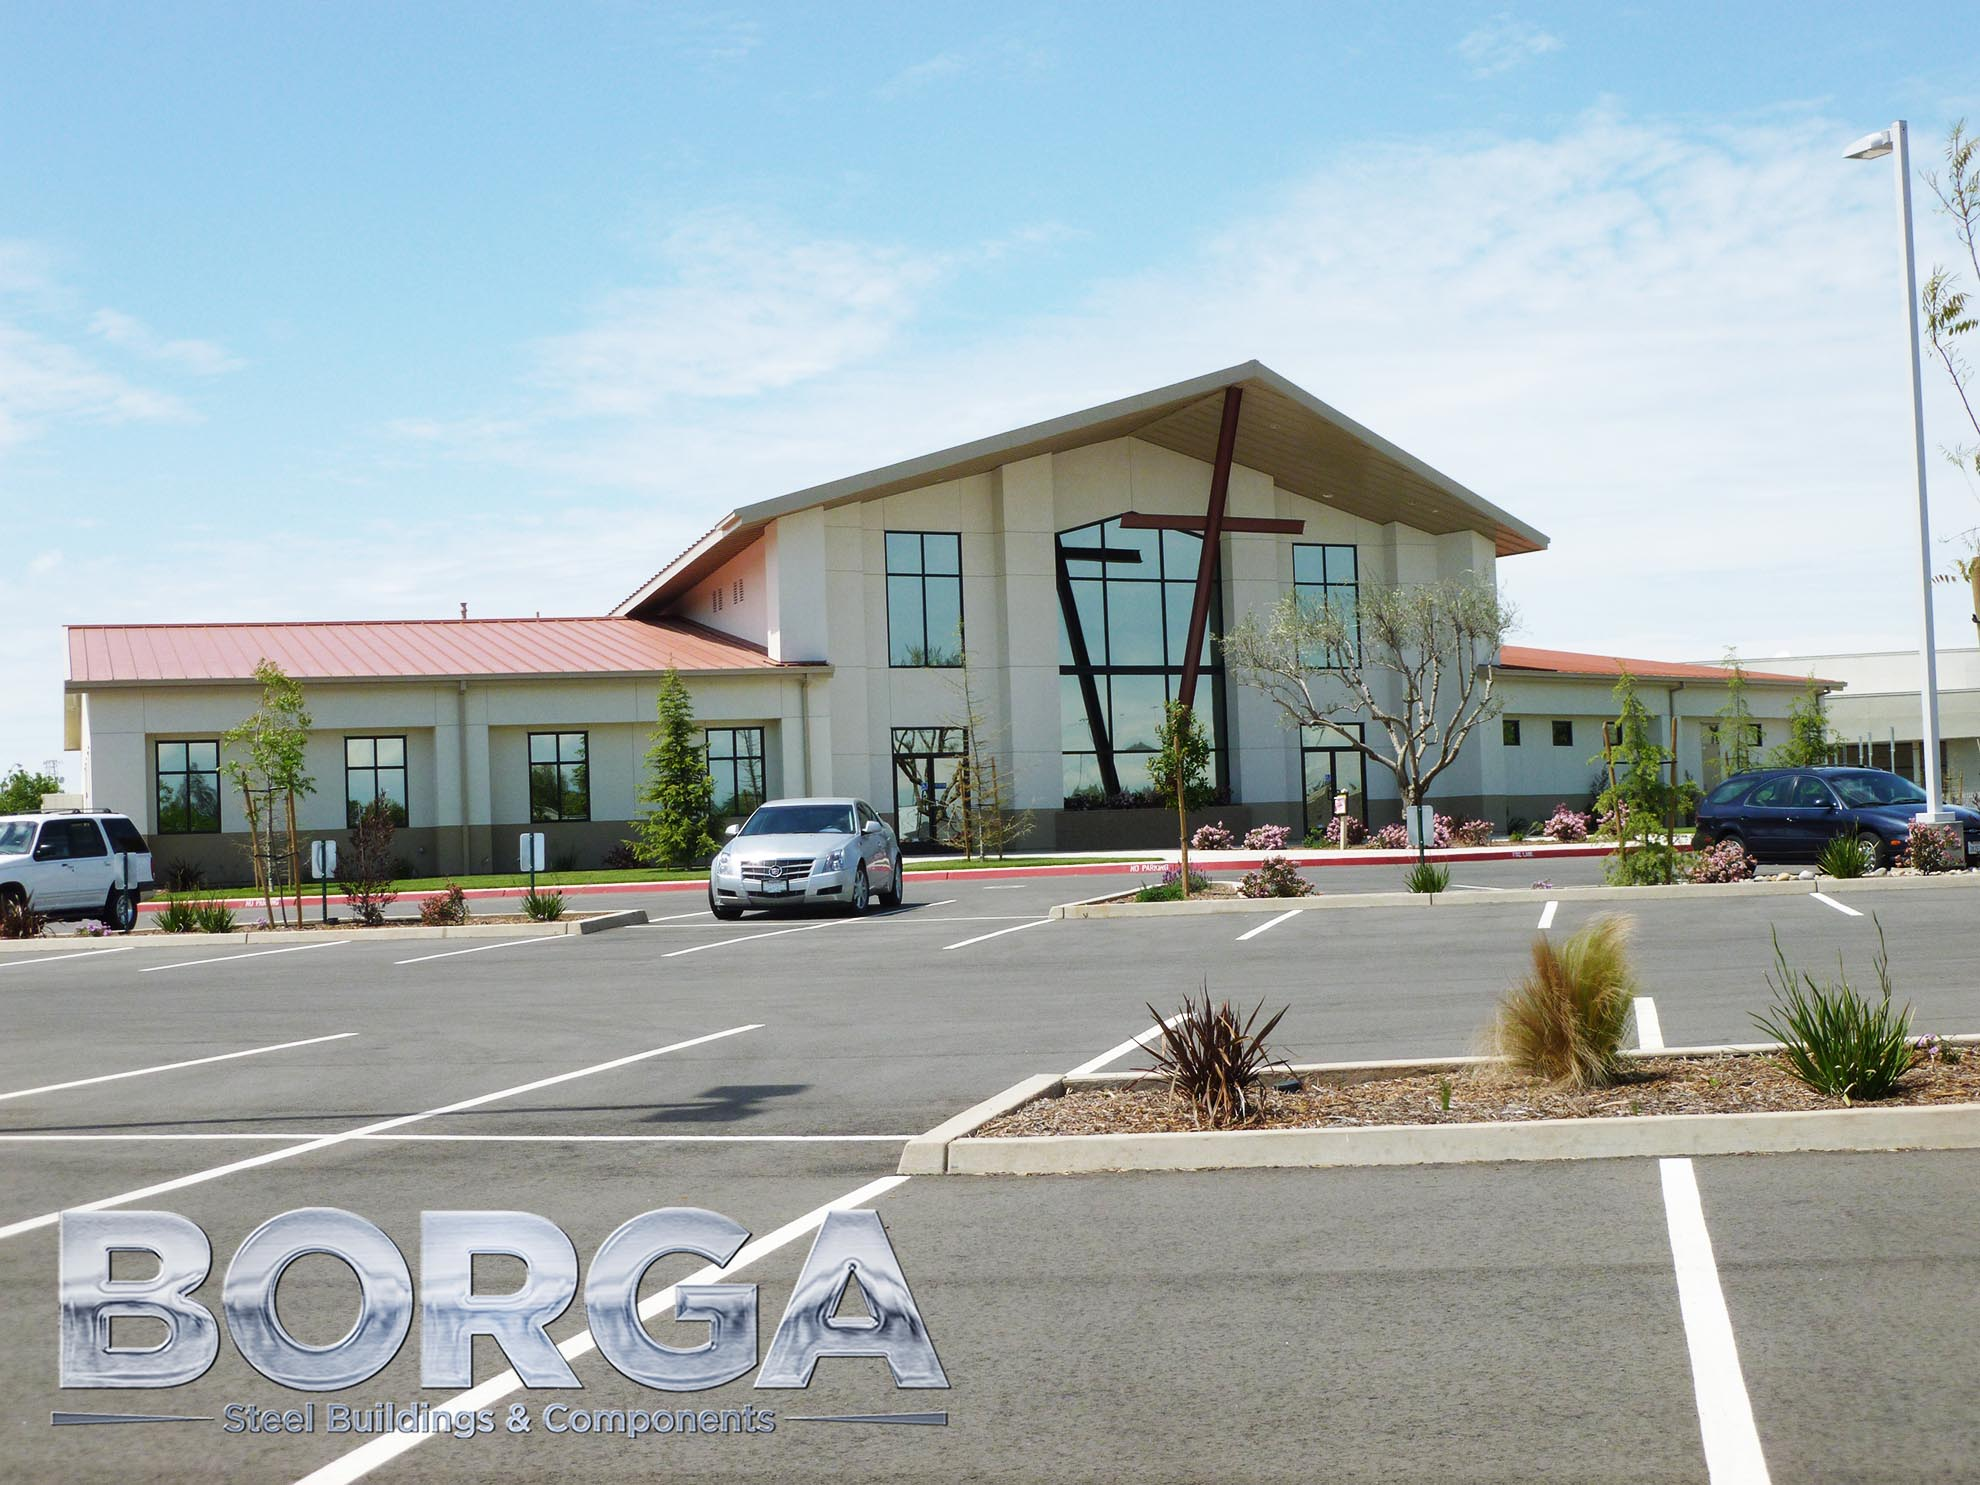 borga steel buildings components fresno california ca lifeway baptist church